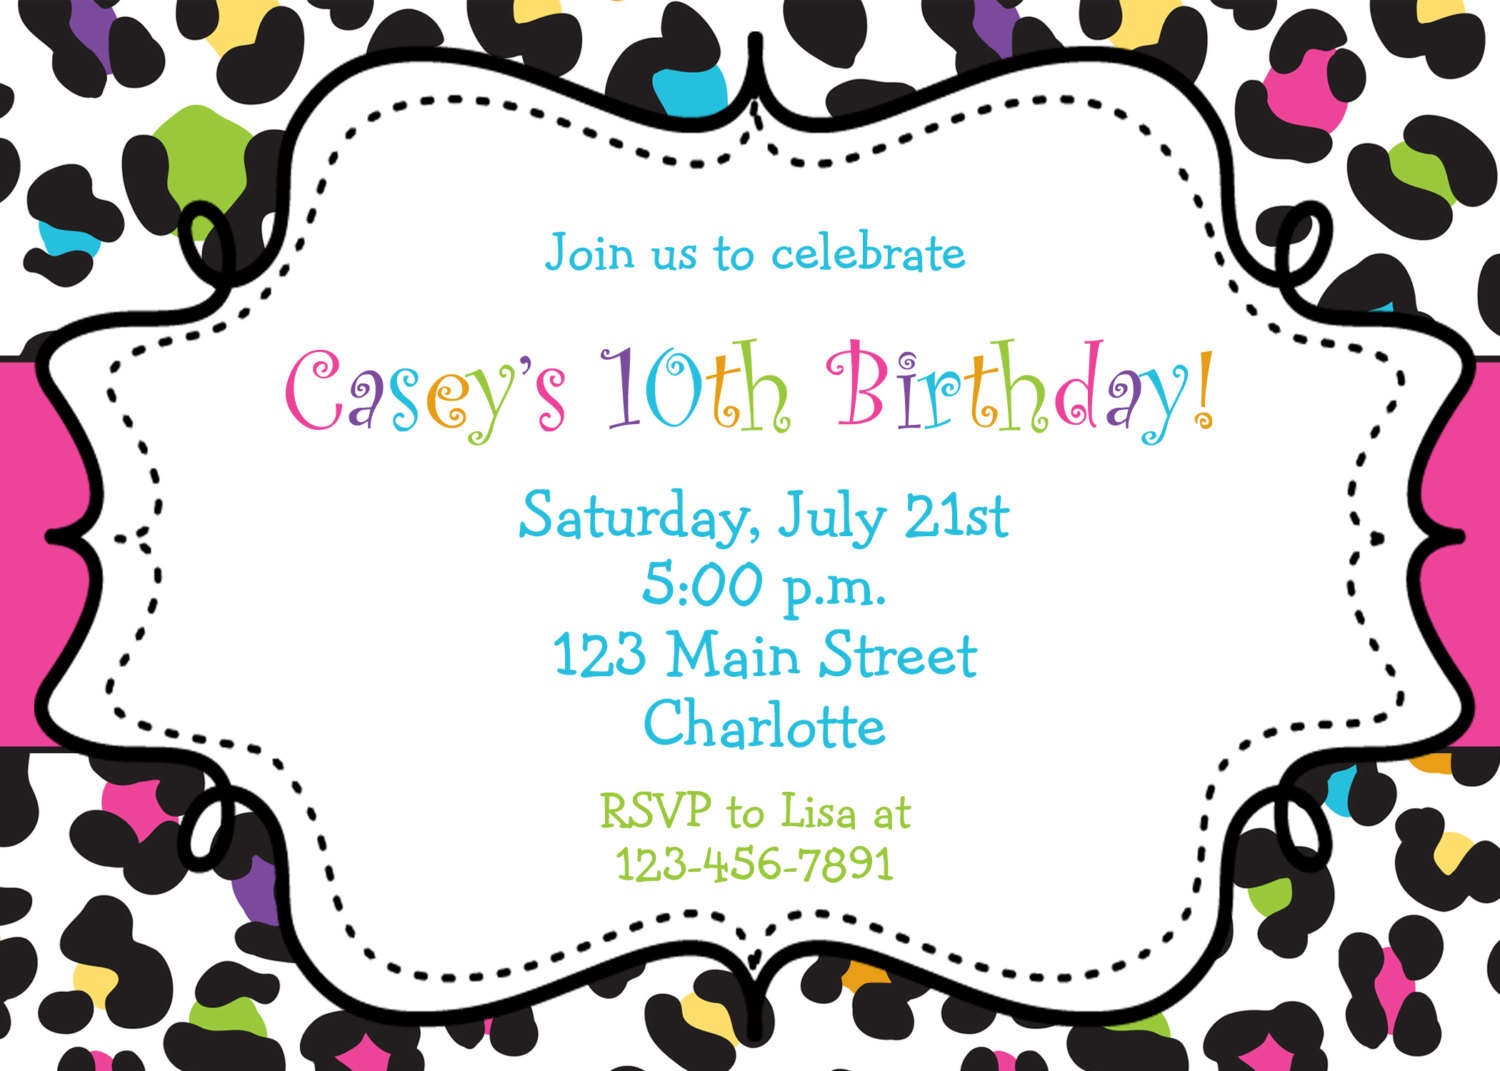 free printable birthday party invitations templates ; free_birthday_invitation_templates_kids_printable_birthday_party_5_0